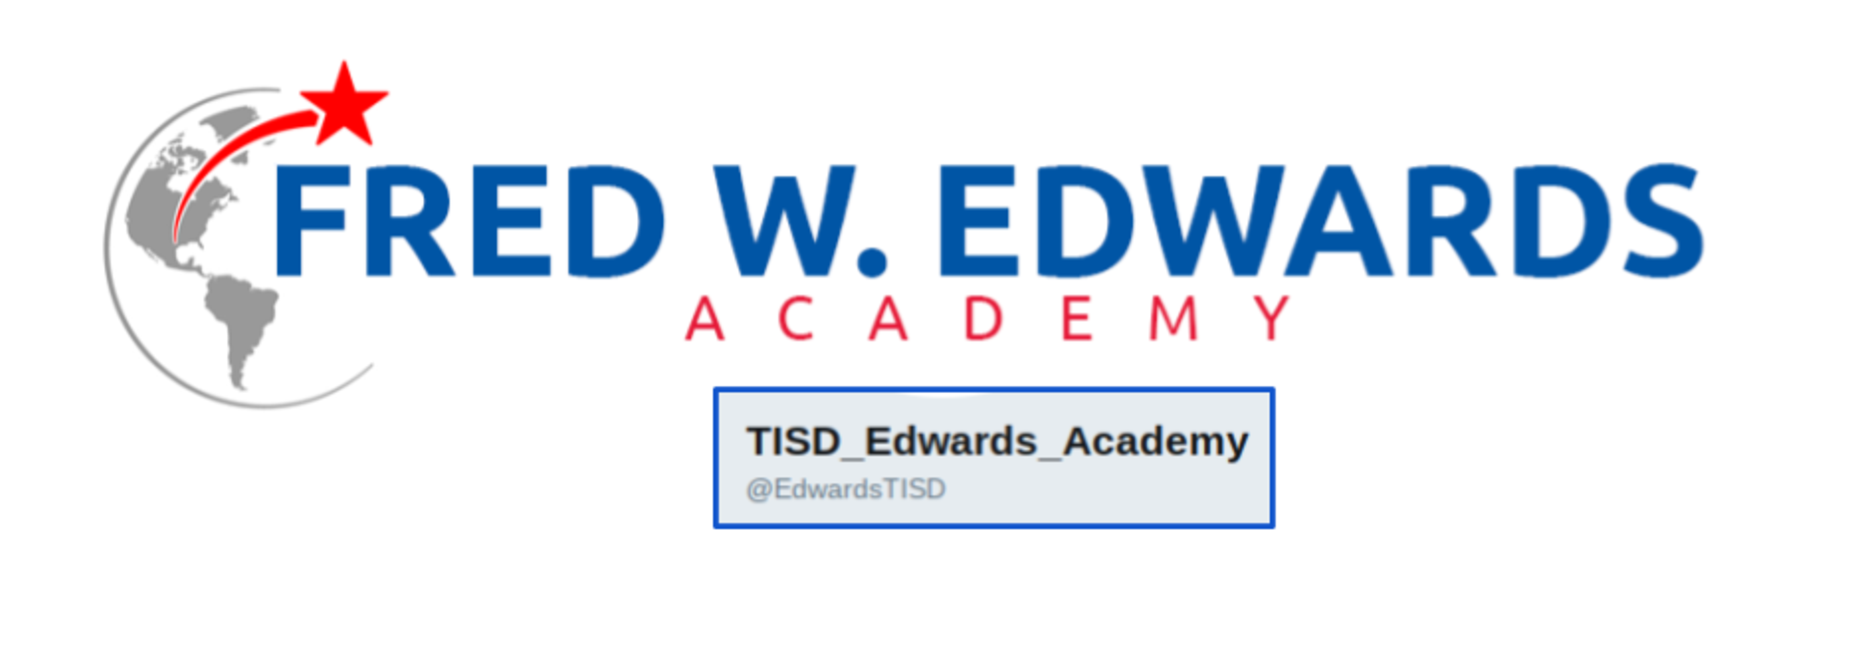 Edwards Academy Twitter Account link